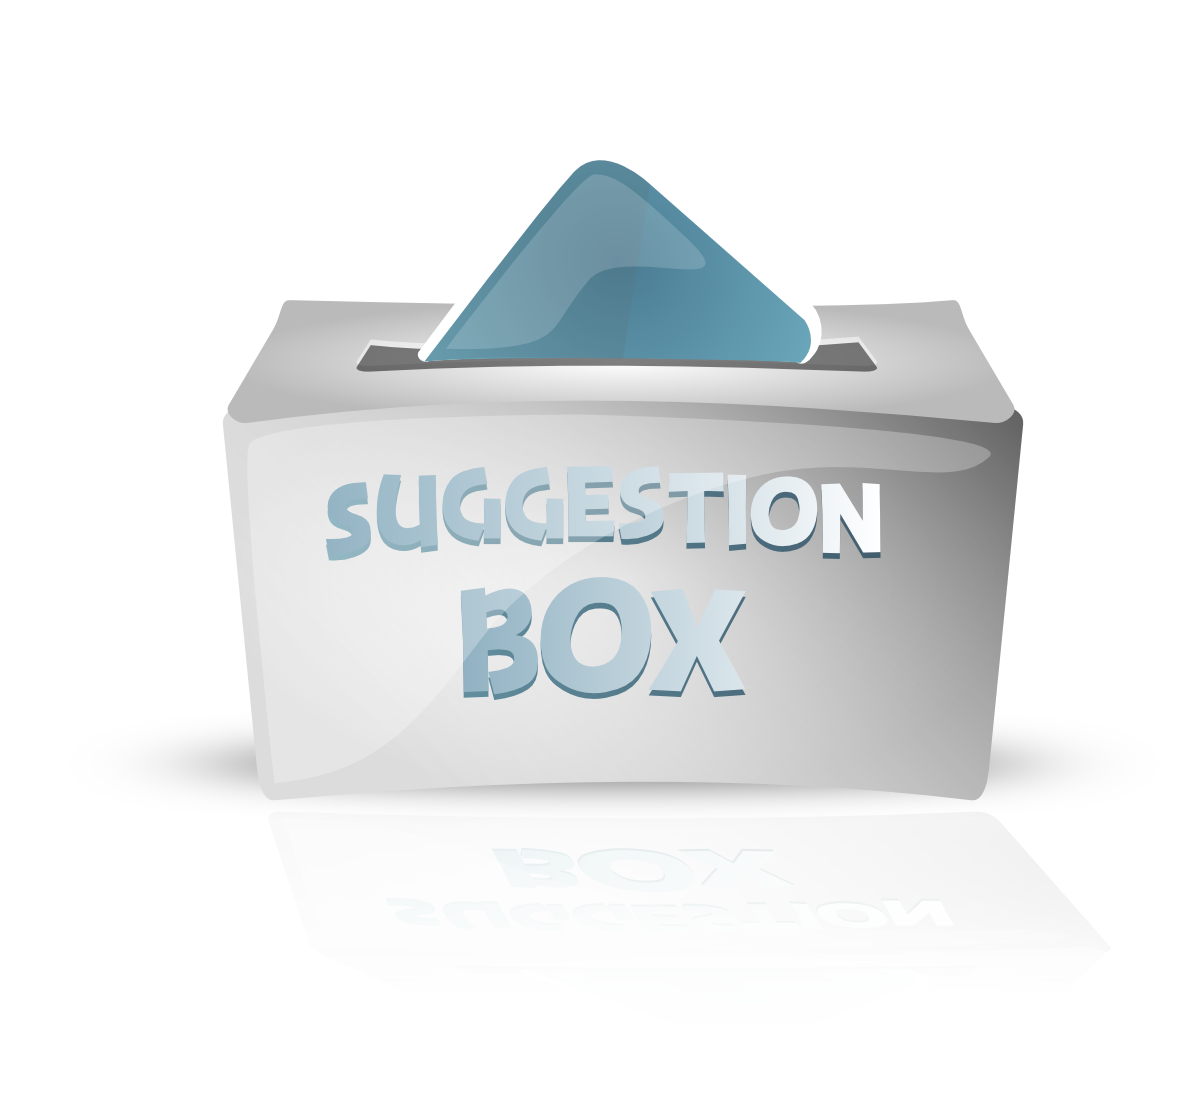 Icon shared by jmkxyy. Idea clipart suggestion box